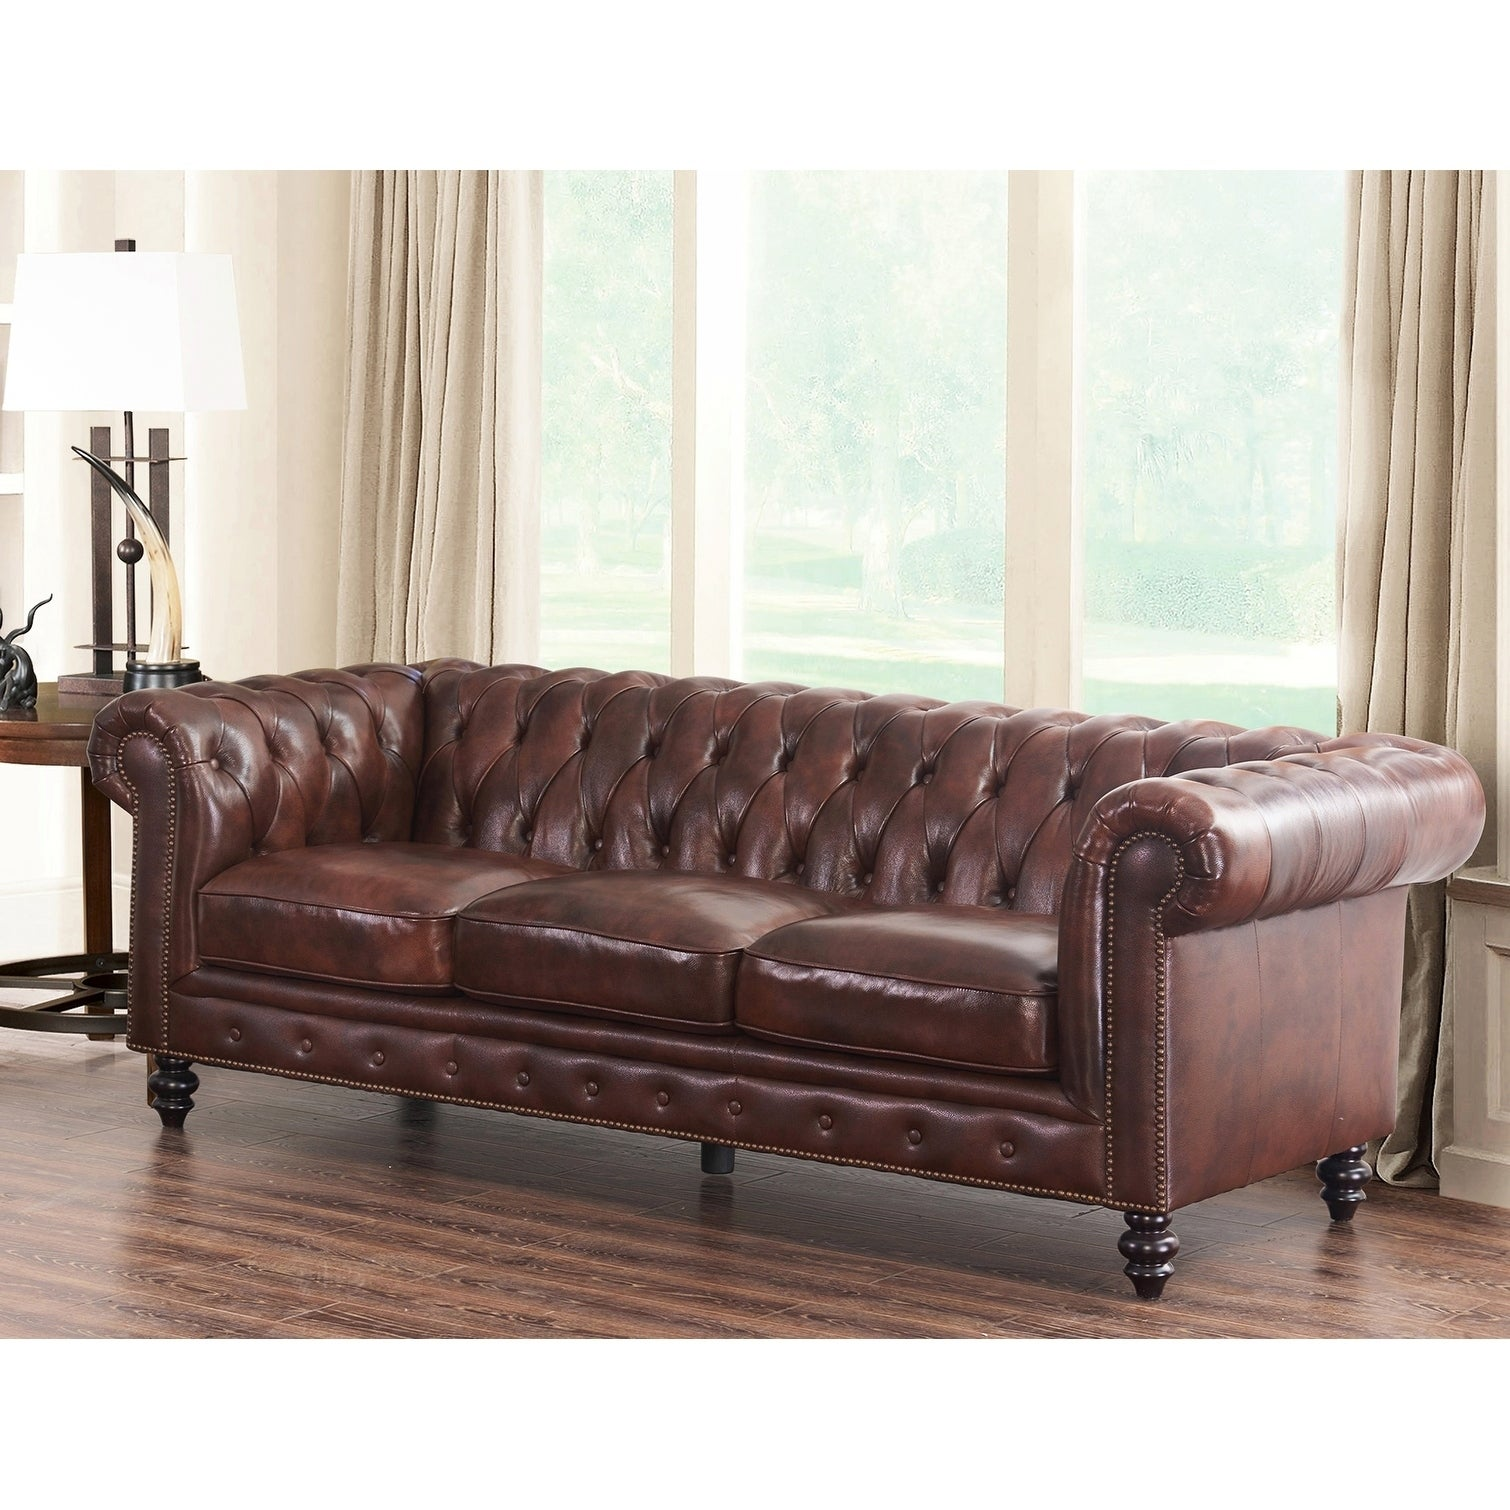 Abbyson grand chesterfield brown top grain leather sofa